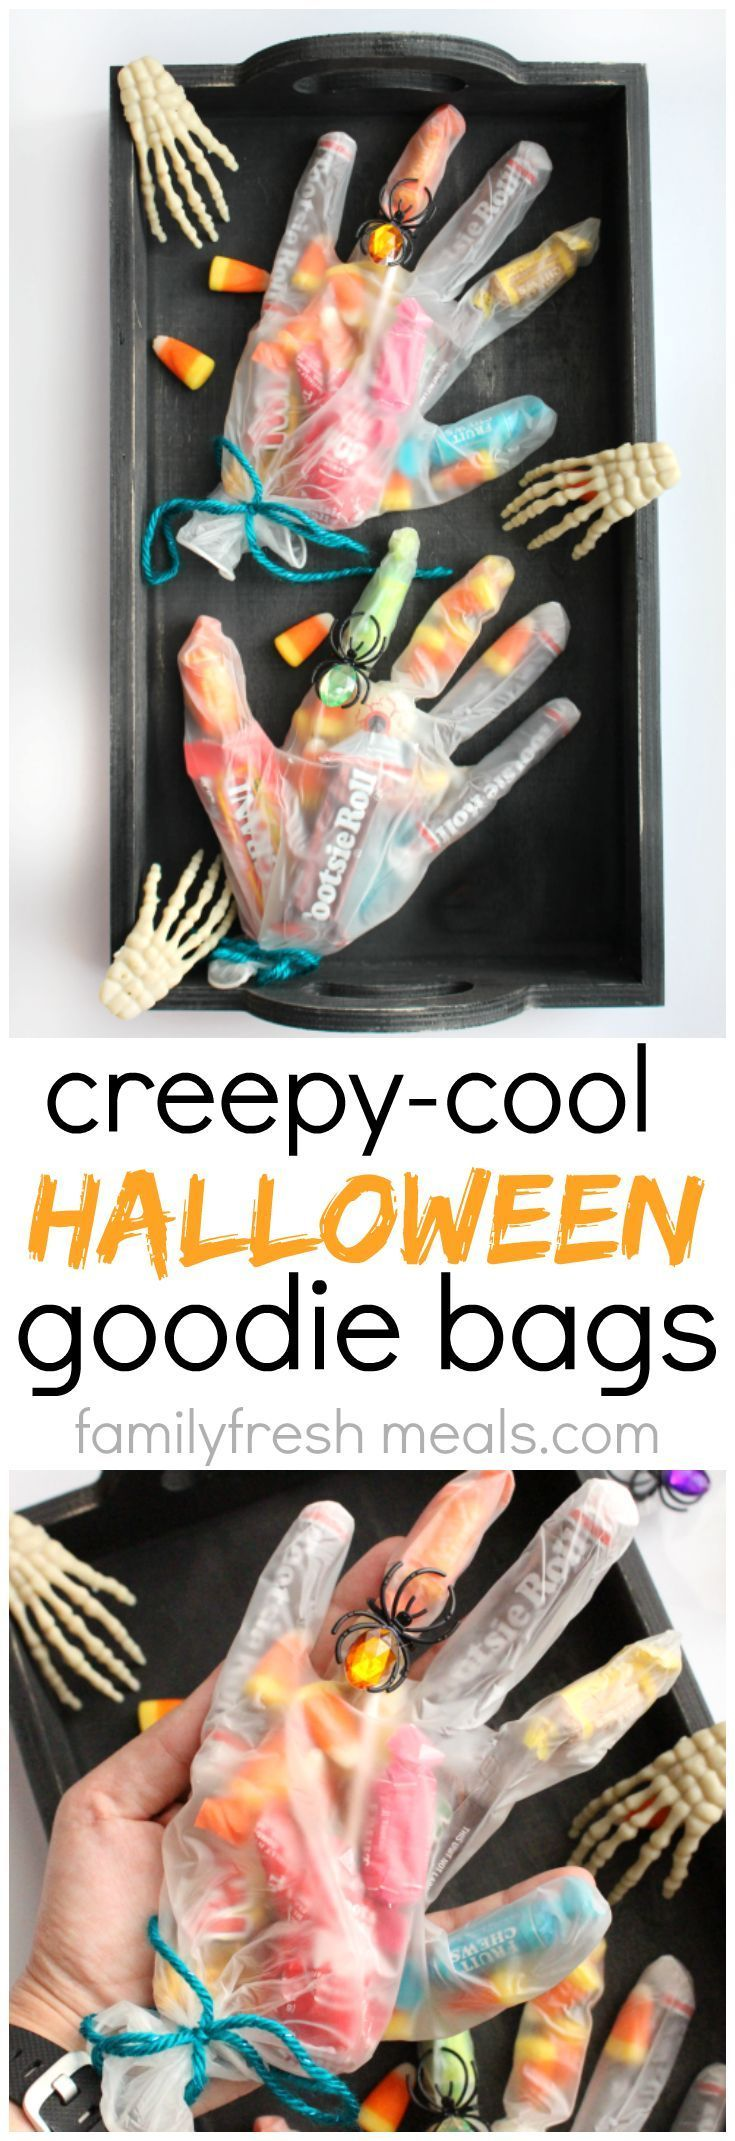 These Creepy Halloween Goodie Bags  make a great favor for a Halloween party, or a fun craft idea for home or school. They're really easy to make, too. #familyfreshmeals #halloween